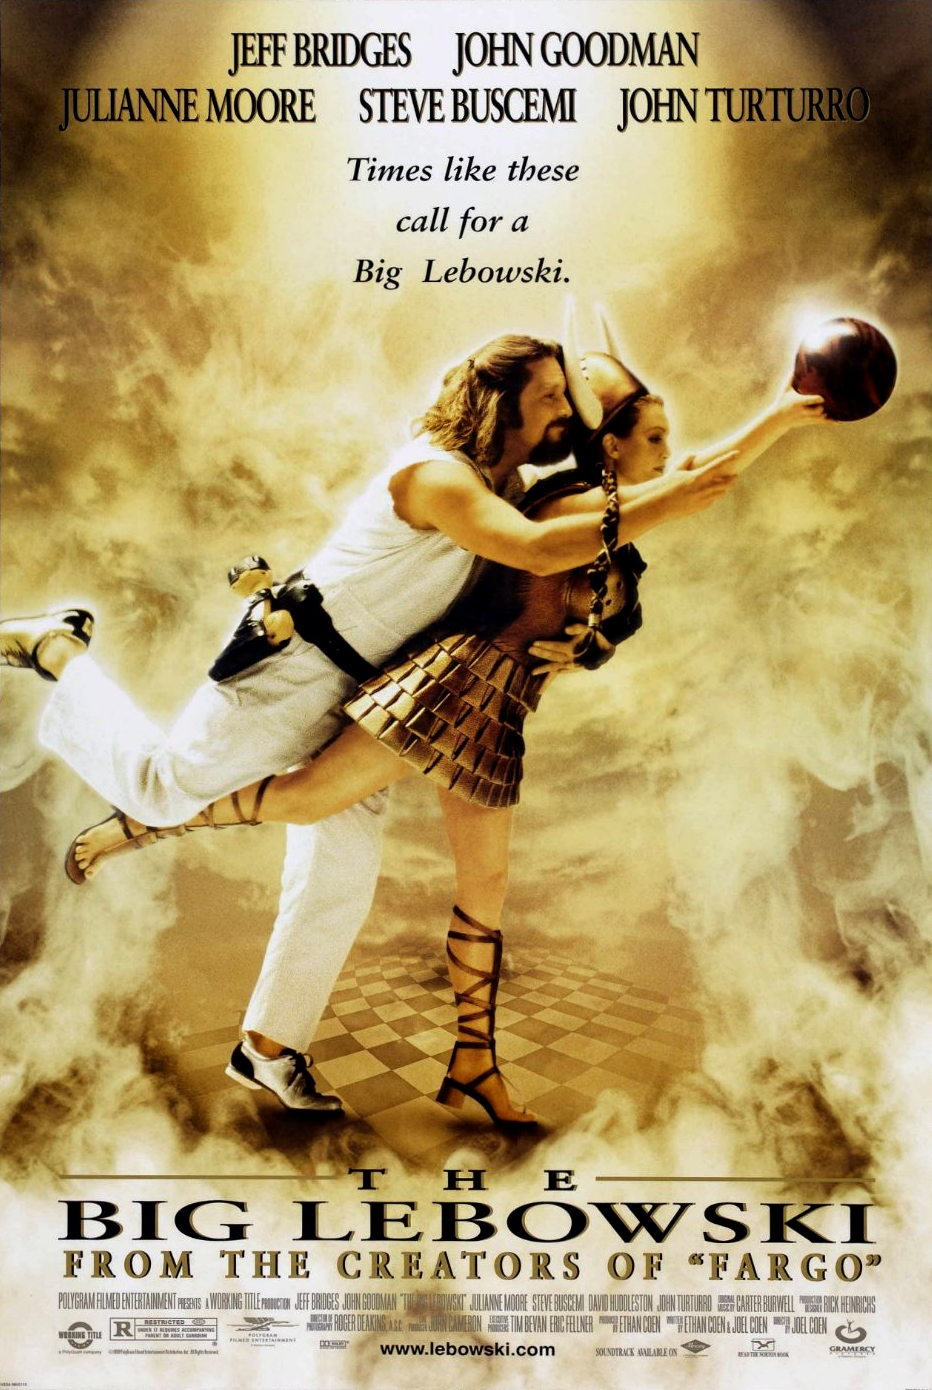 The Big Lebowski (1998) - Best guess: Two people fall for each other thanks to their mutual love of bowling.